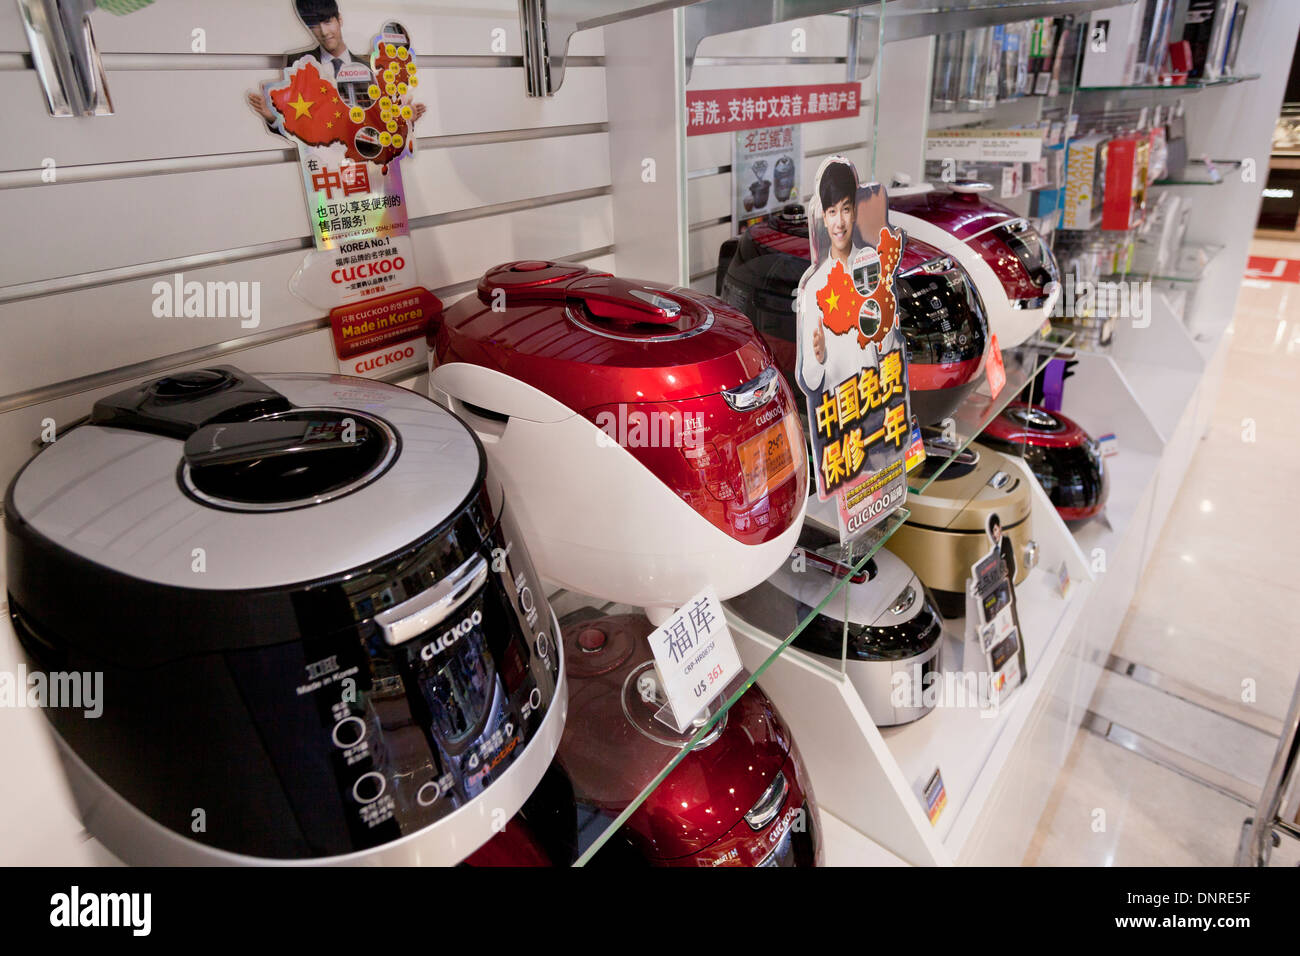 Modern computerized rice cookers on display at department store - Seoul, South Korea - Stock Image